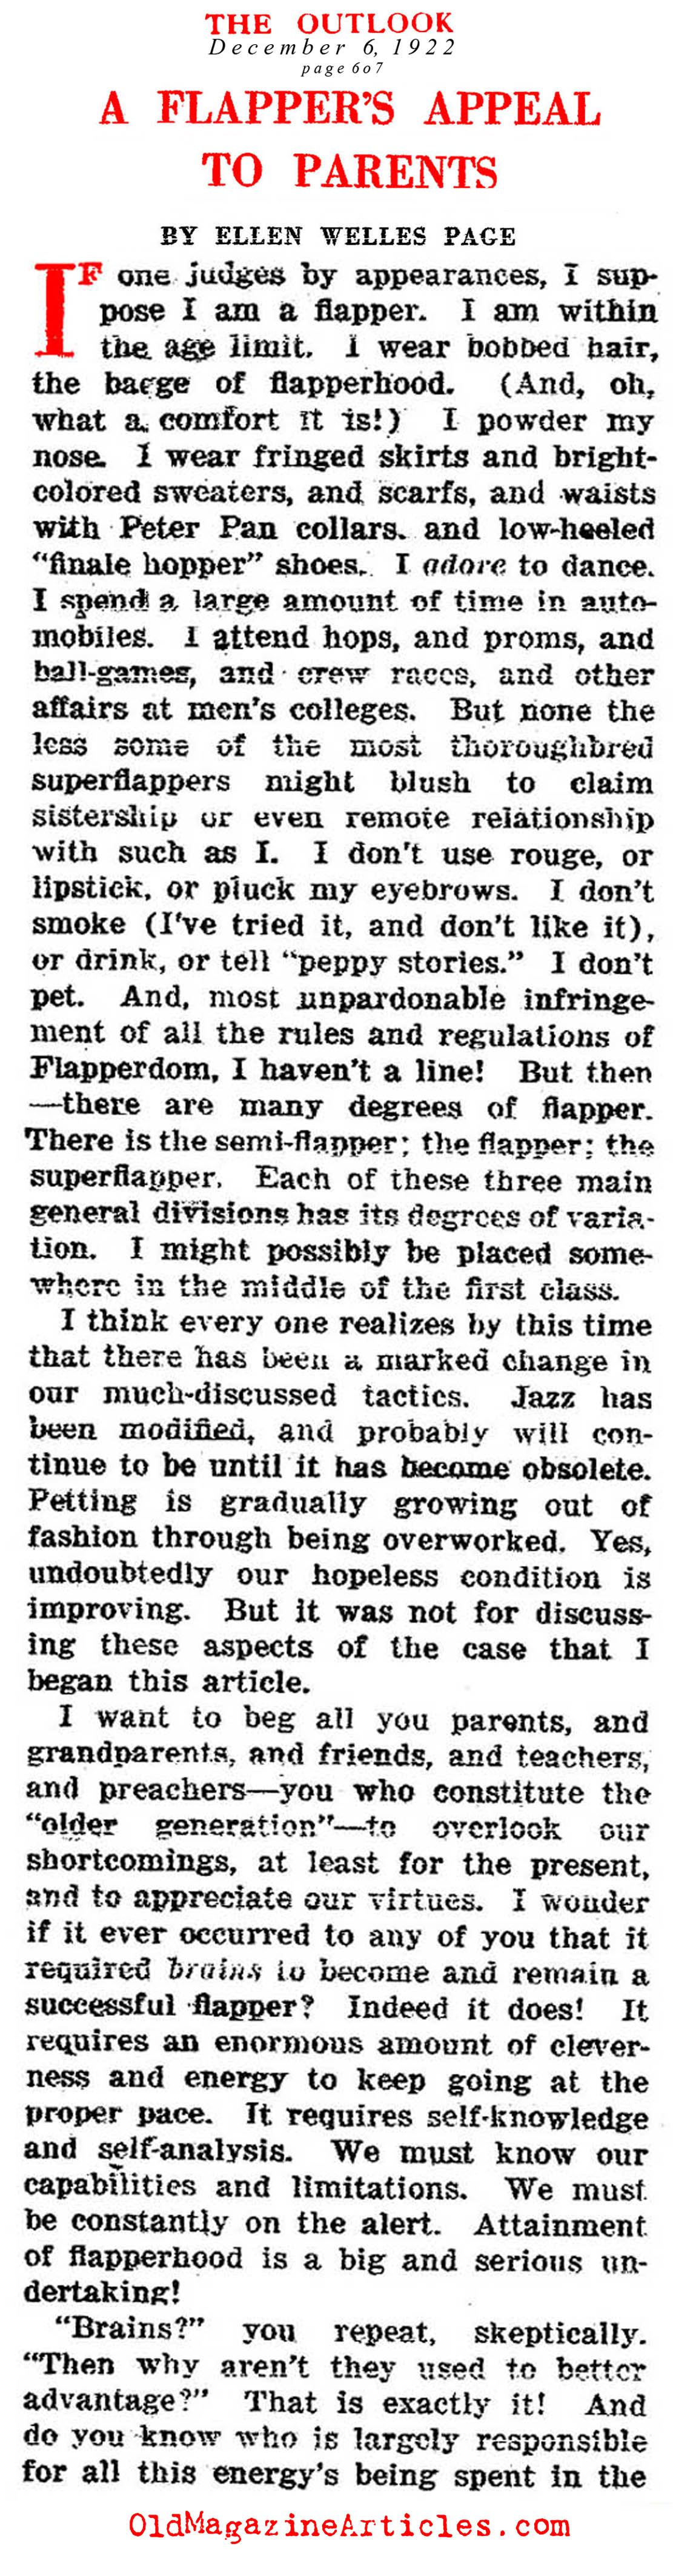 ''A Flapper's Appeal to Parents''  (The Outlook, 1922)